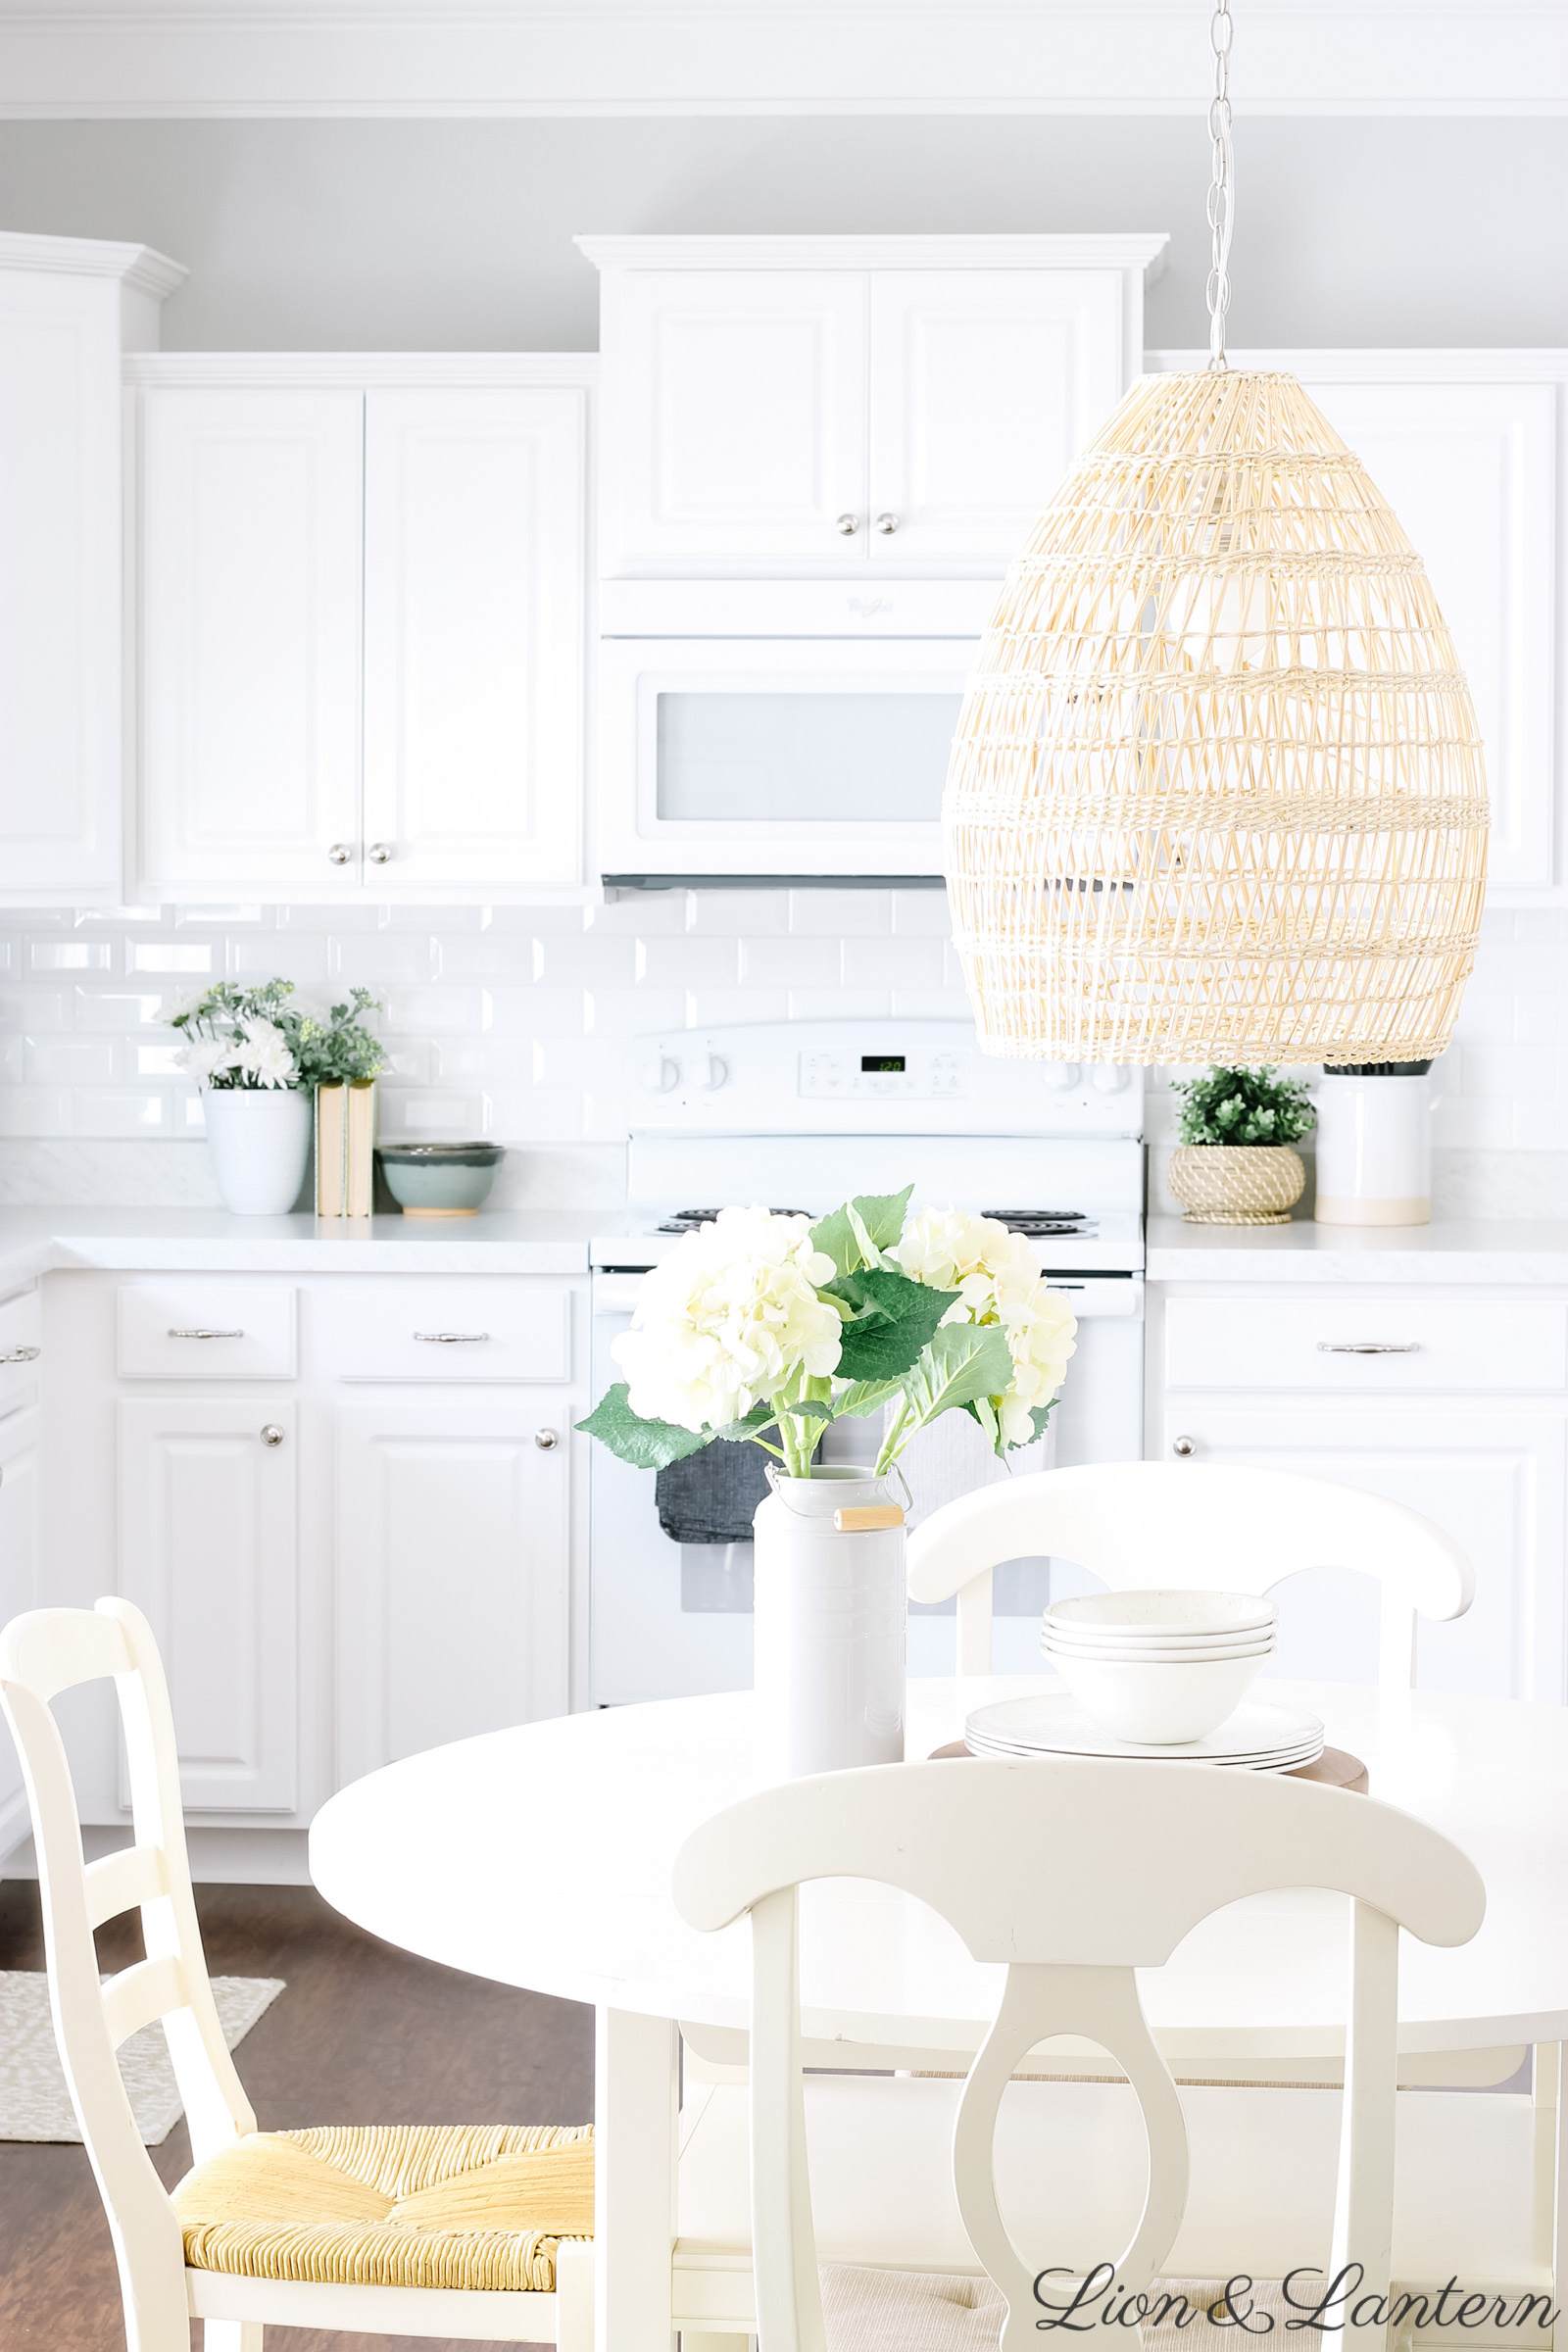 Spring Home Tour 2019 at LionAndLantern.com | vintage kitchen decor, round white dining table, woven pendant, white subway tile, budget decorating, neutral kitchen